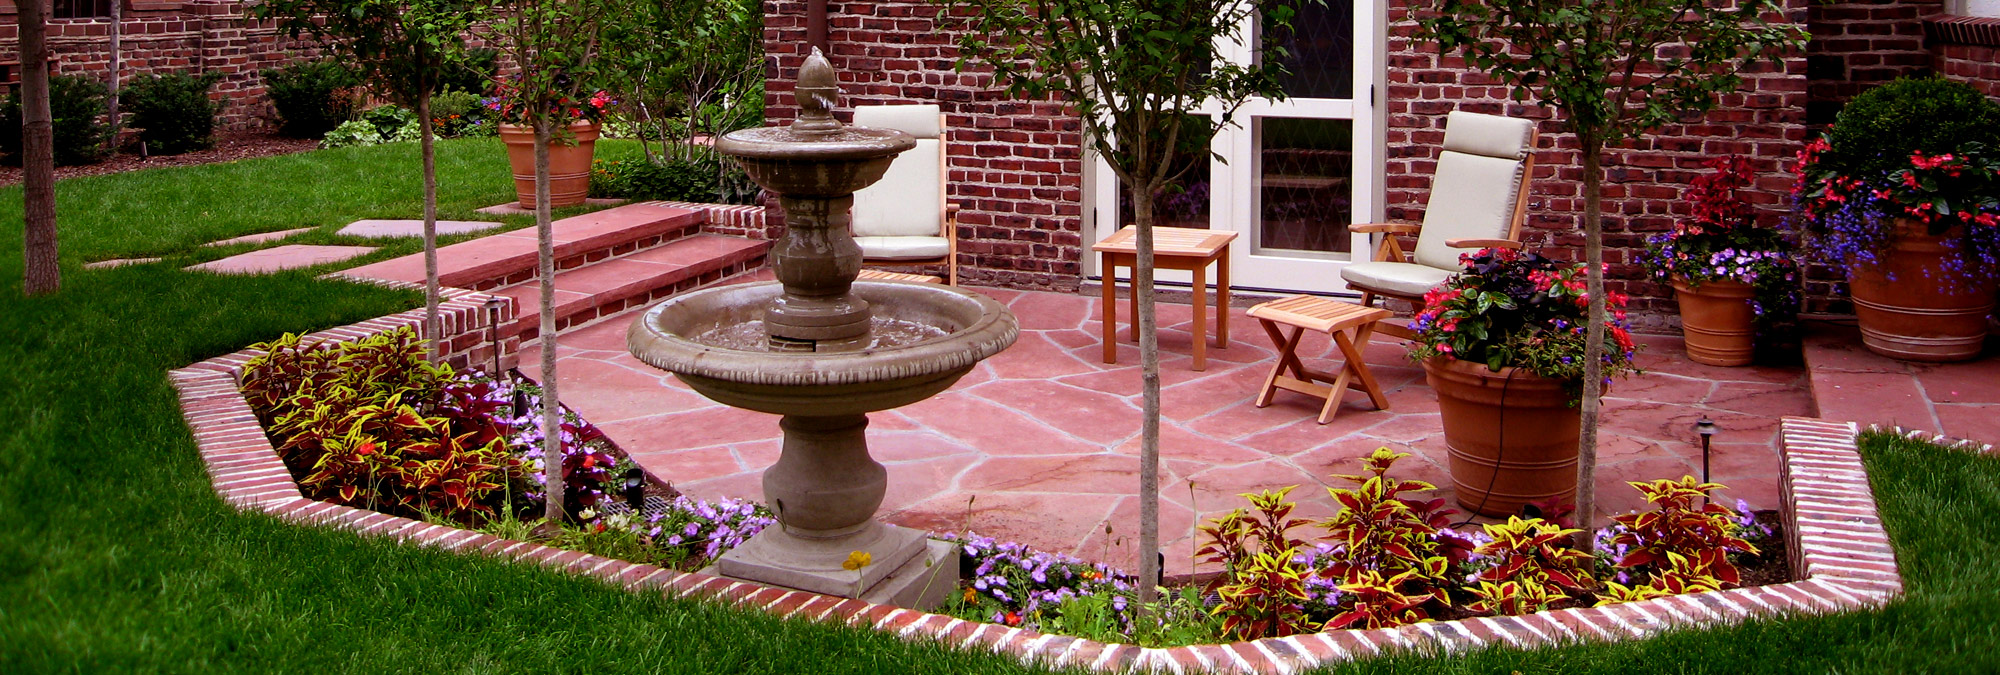 About Blueline Landscaping